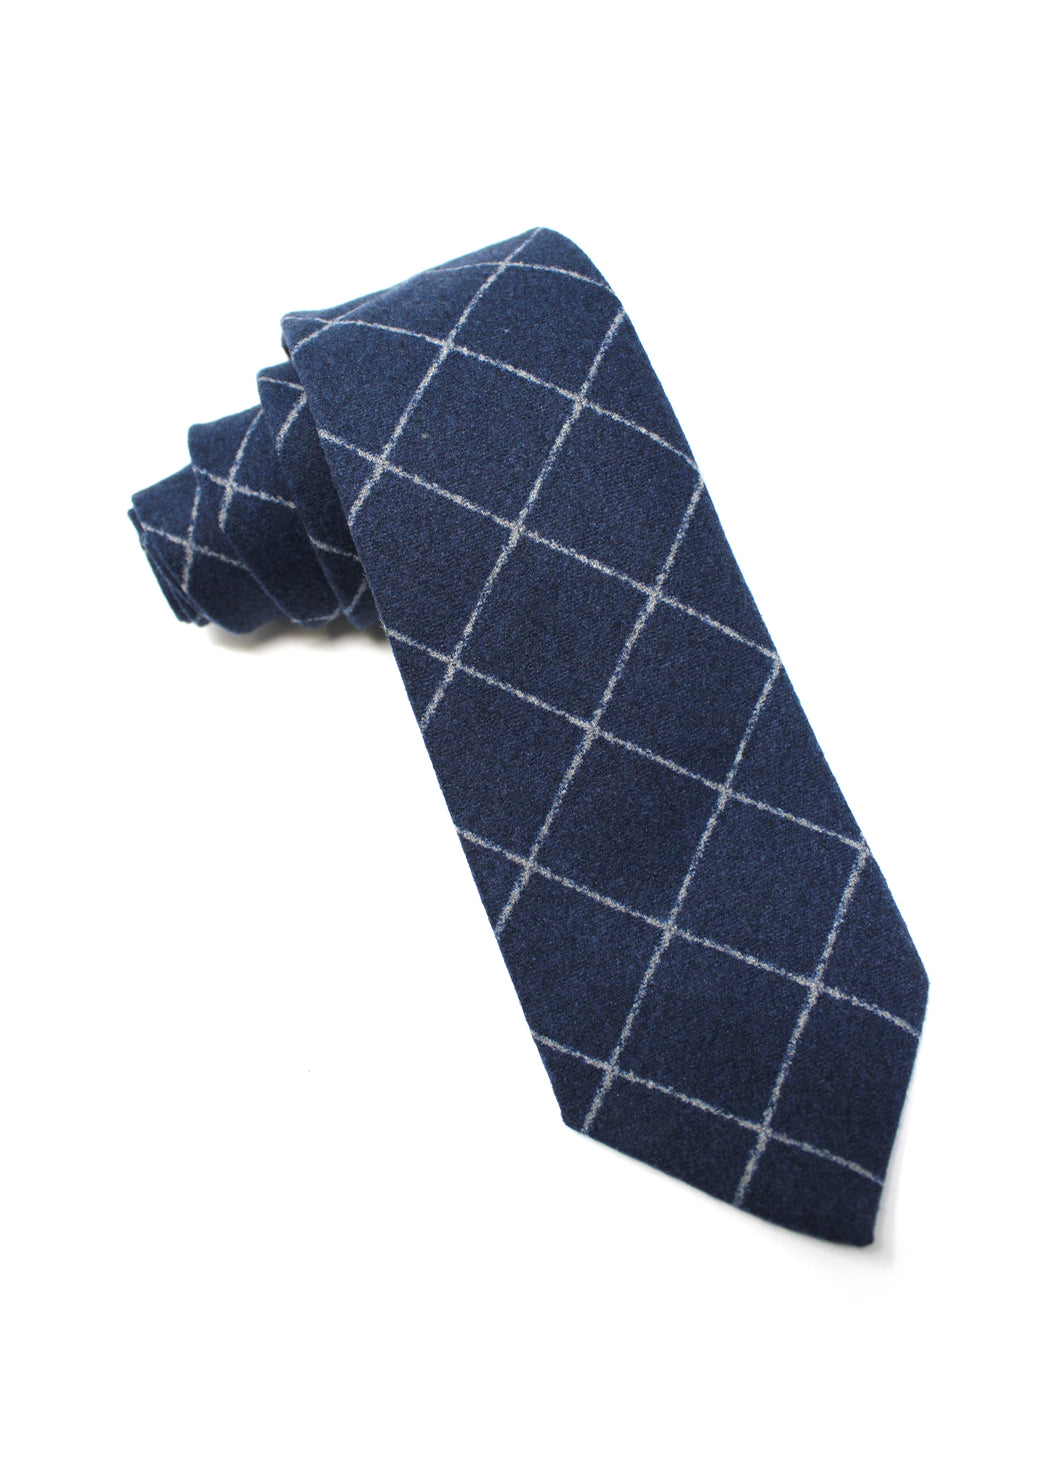 Navy Flannel Tie with Chalk Stripe Window-Pane